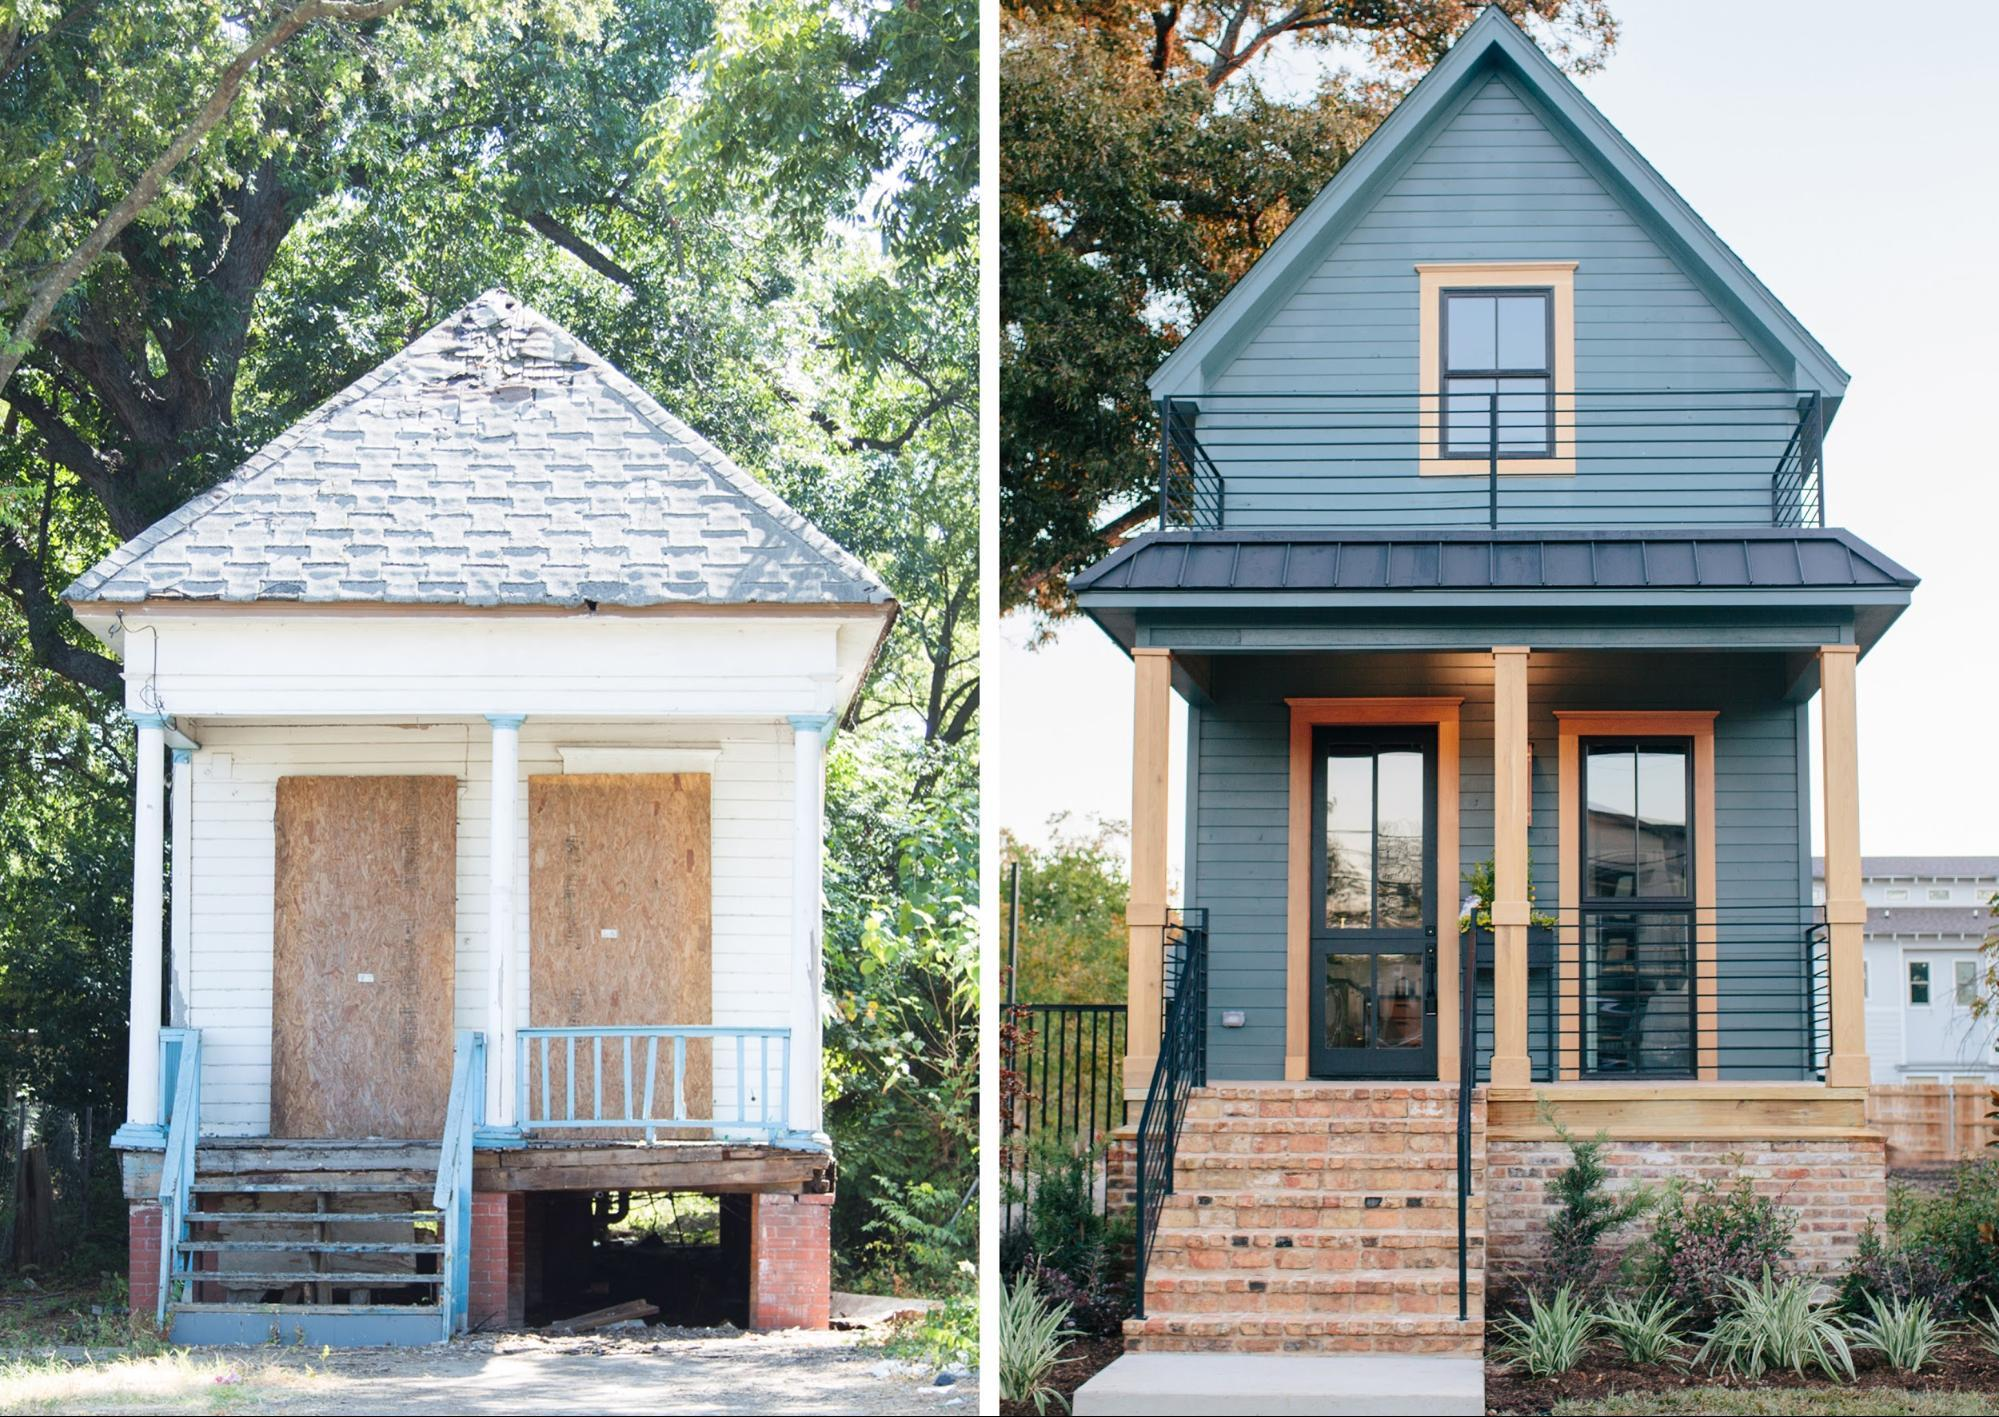 The Definitive Ranking of Joanna Gaines' Best 'Fixer Upper